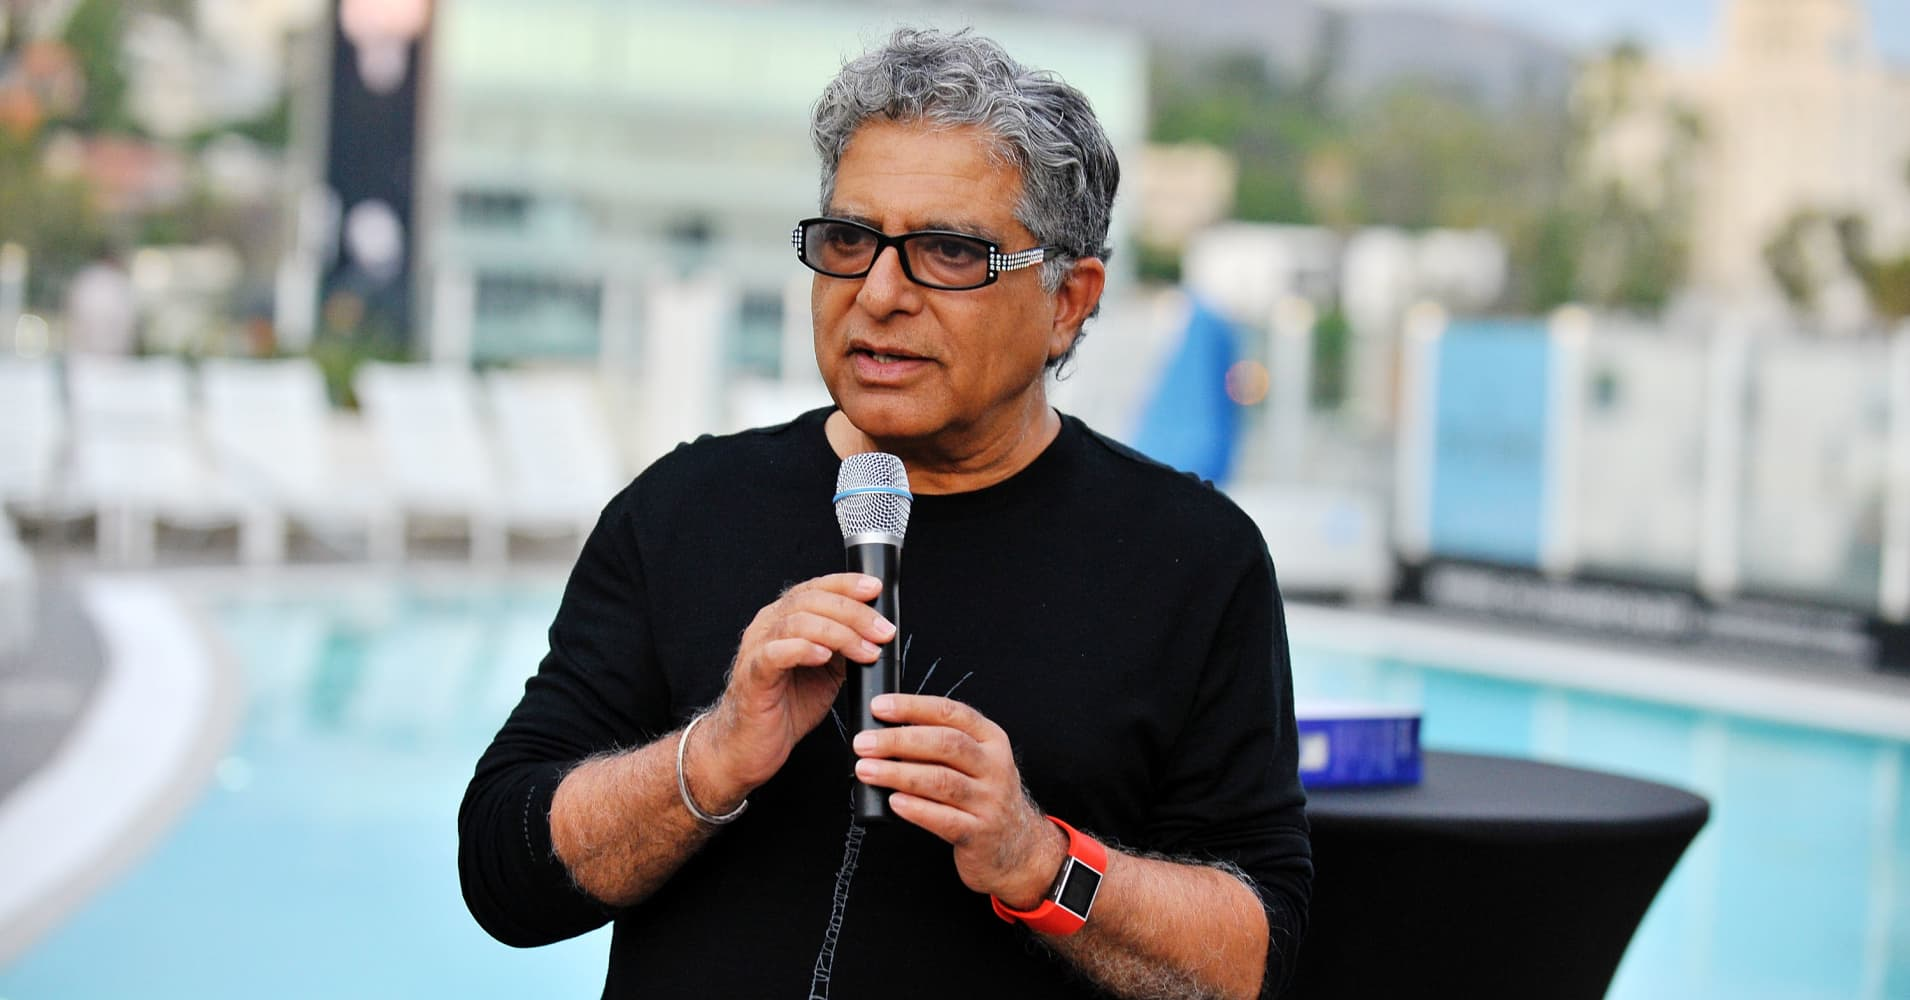 Dr. Deepak Chopra attends WORLDZ Cultural Marketing Summit.